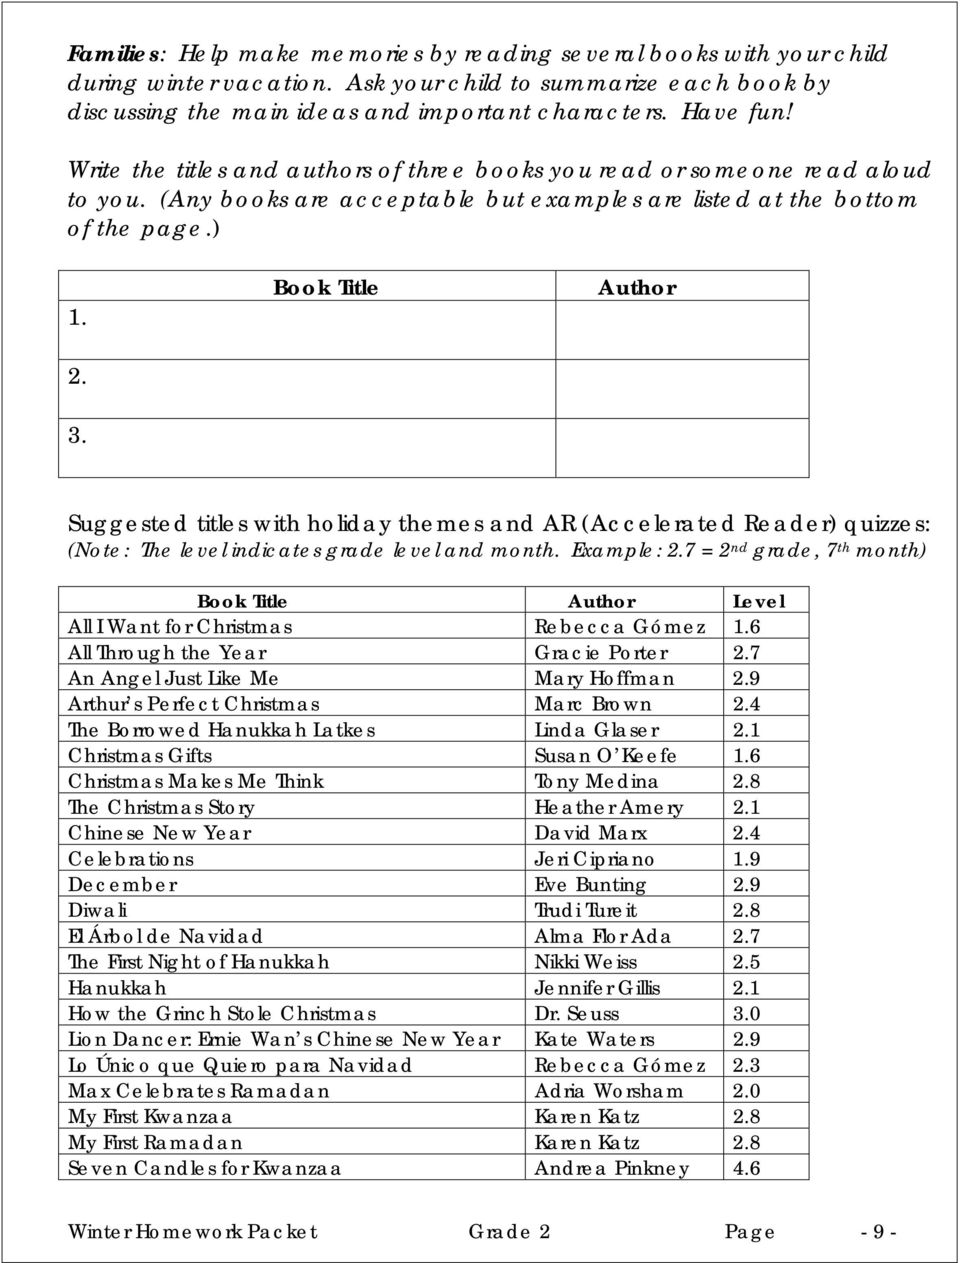 Book Title Author Suggested titles with holiday themes and AR (Accelerated Reader) quizzes: (Note: The level indicates grade level and month. Example: 2.